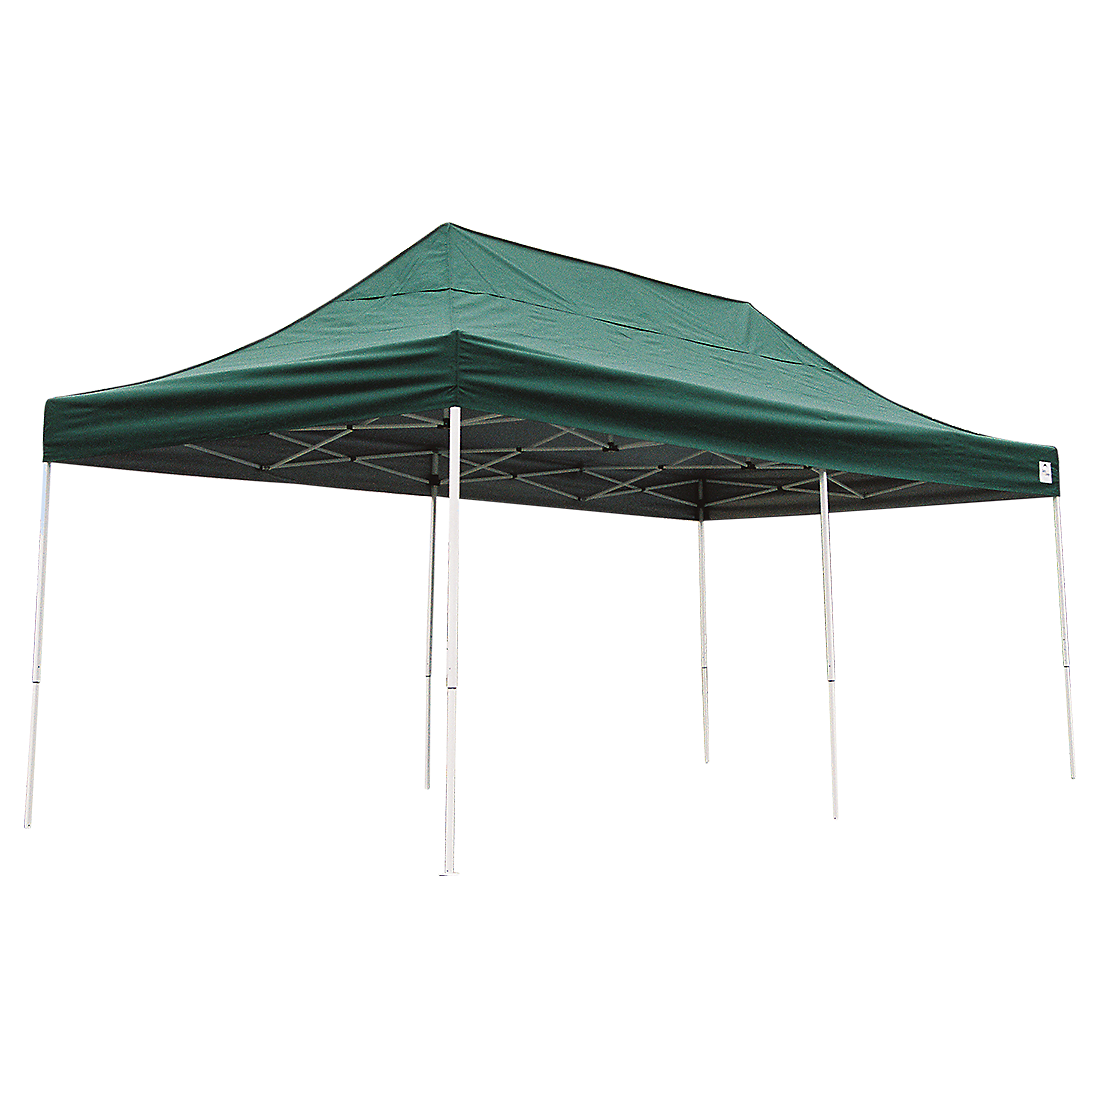 Pop Up Canopy Hd Straight Leg 10 X 20 Ft